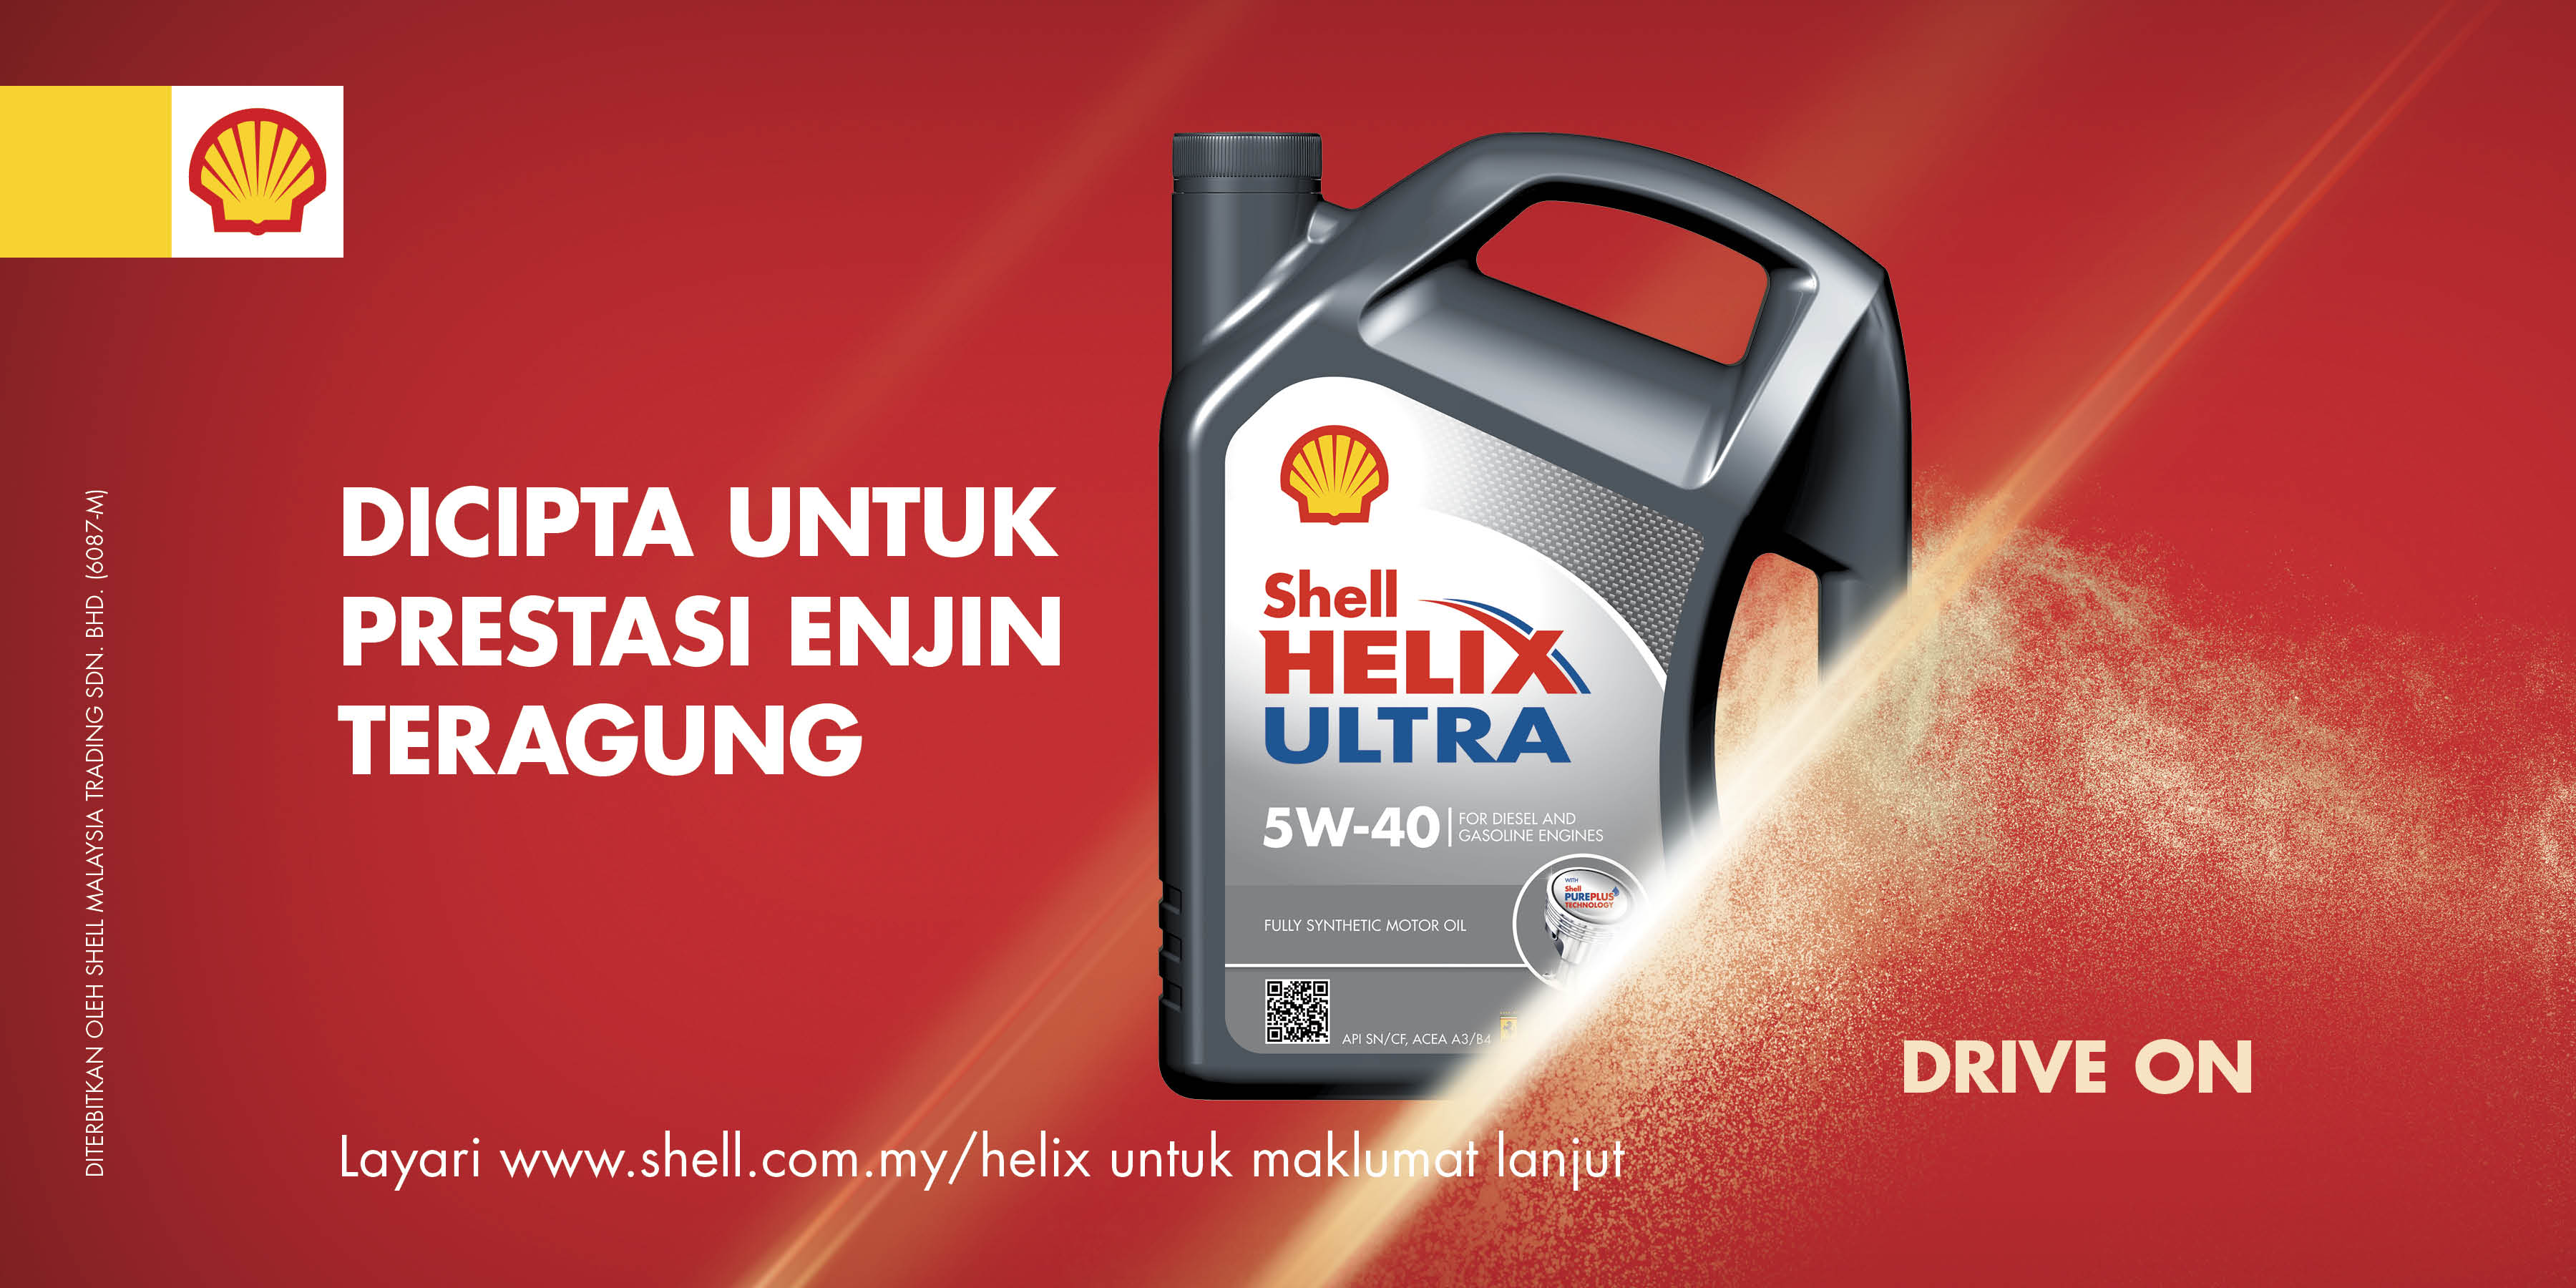 Shell Helix Drive On